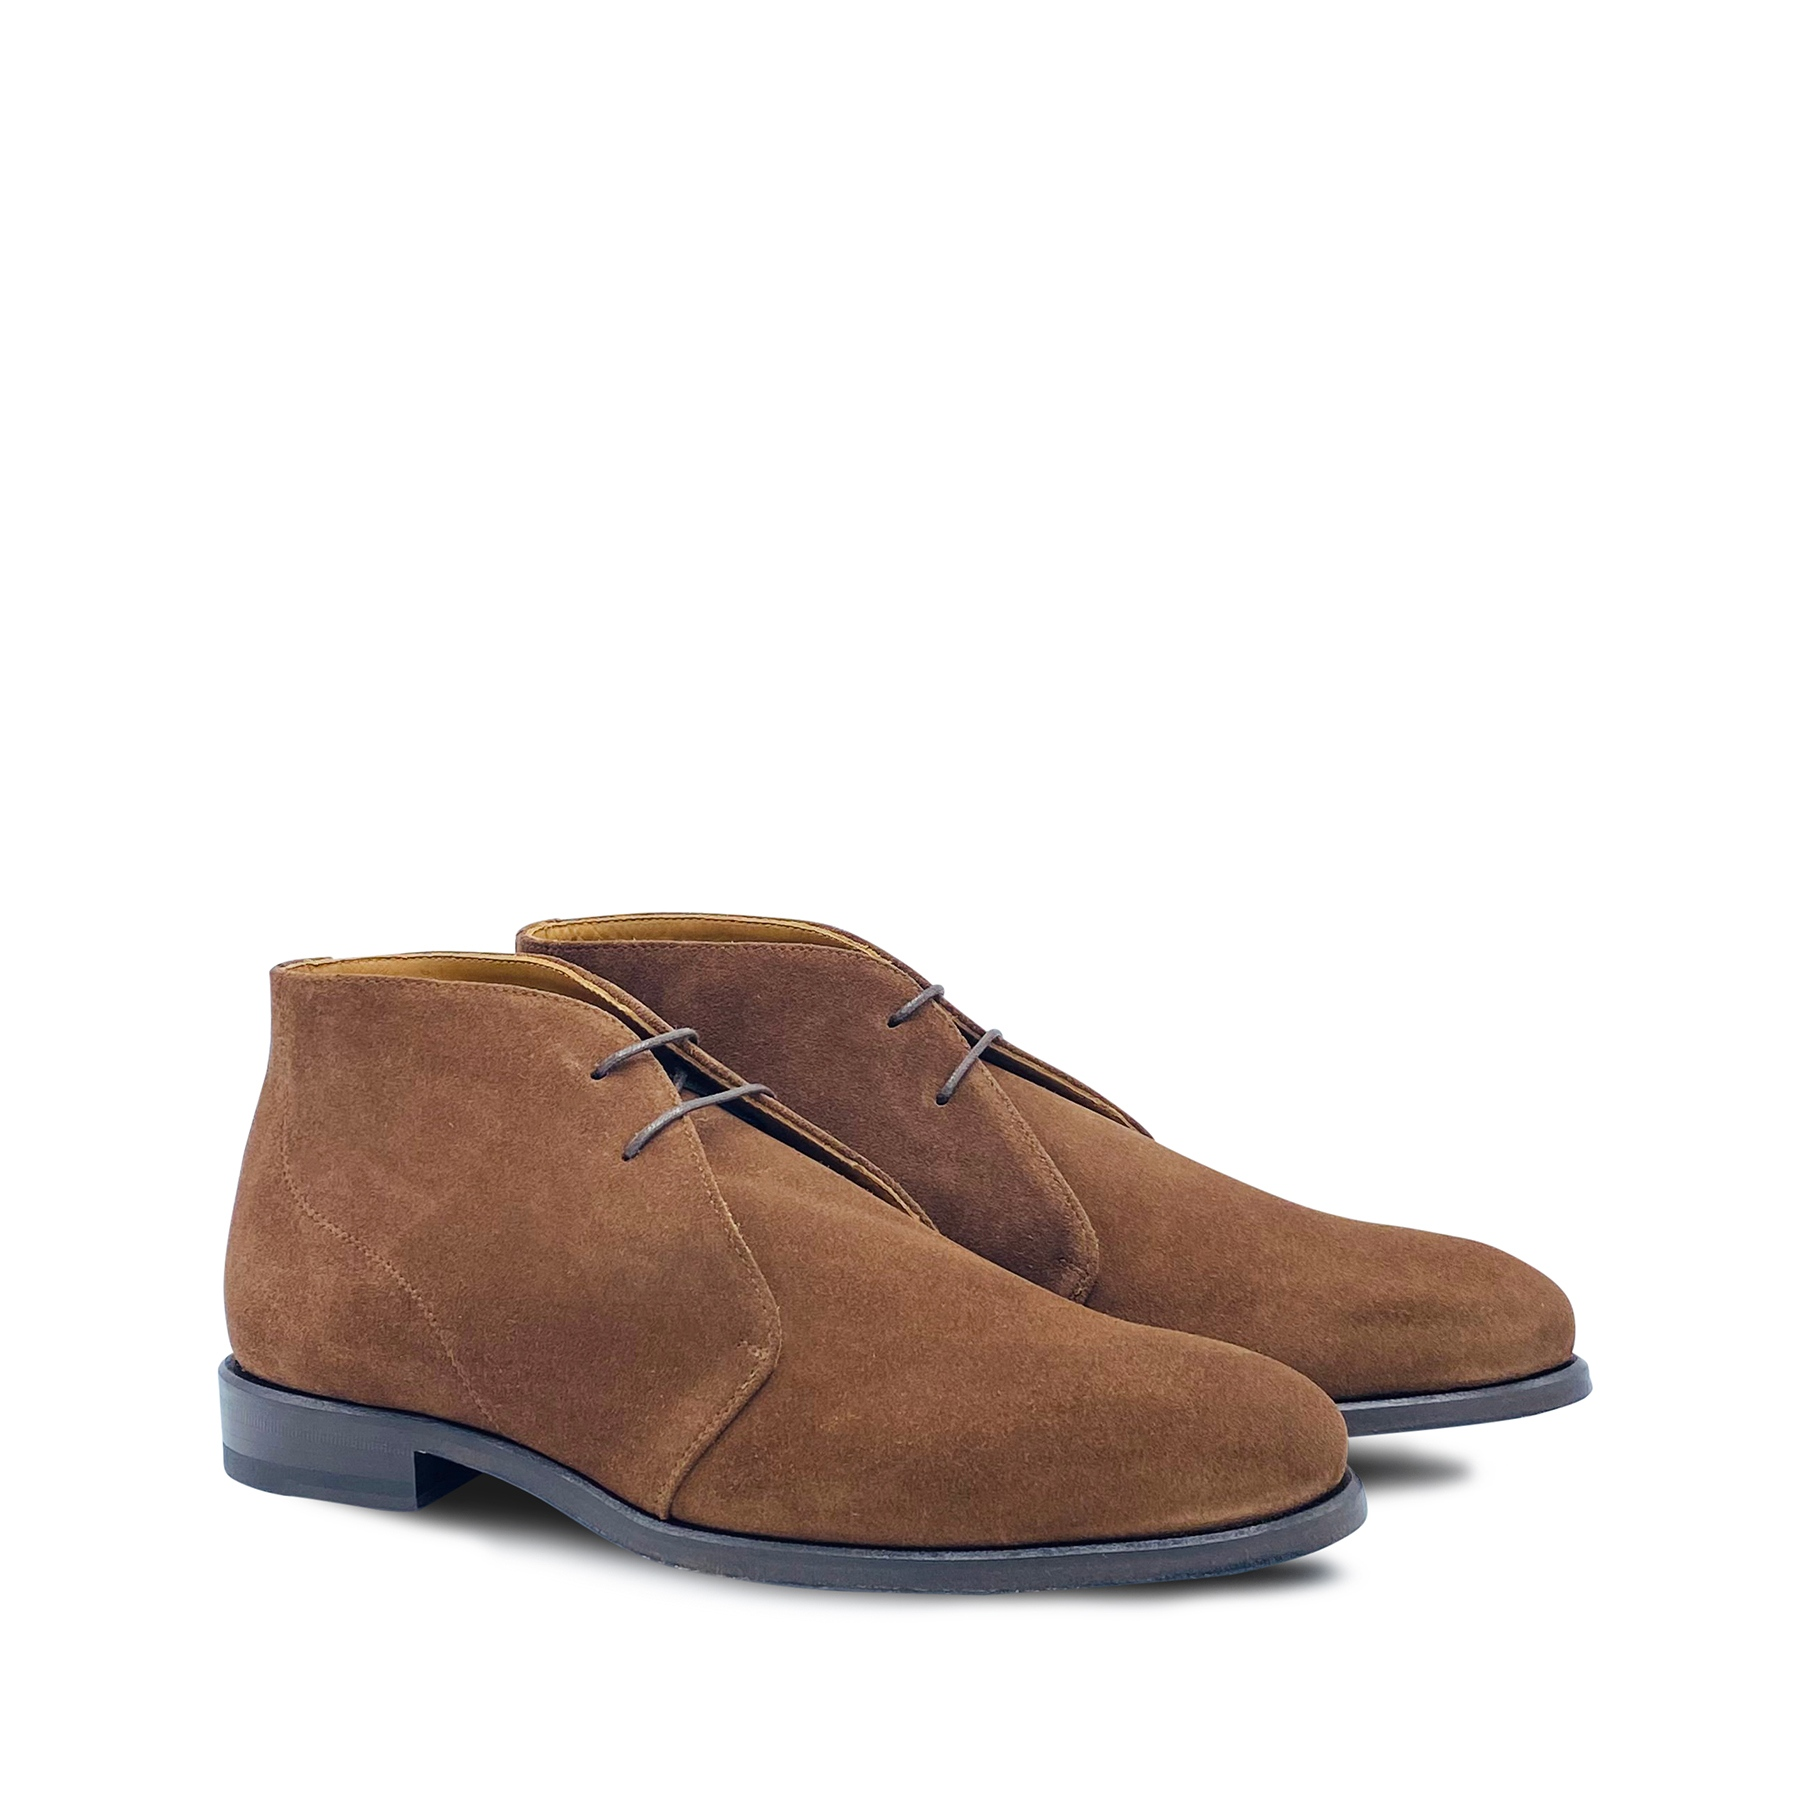 Jason – Tan Suede Chukka